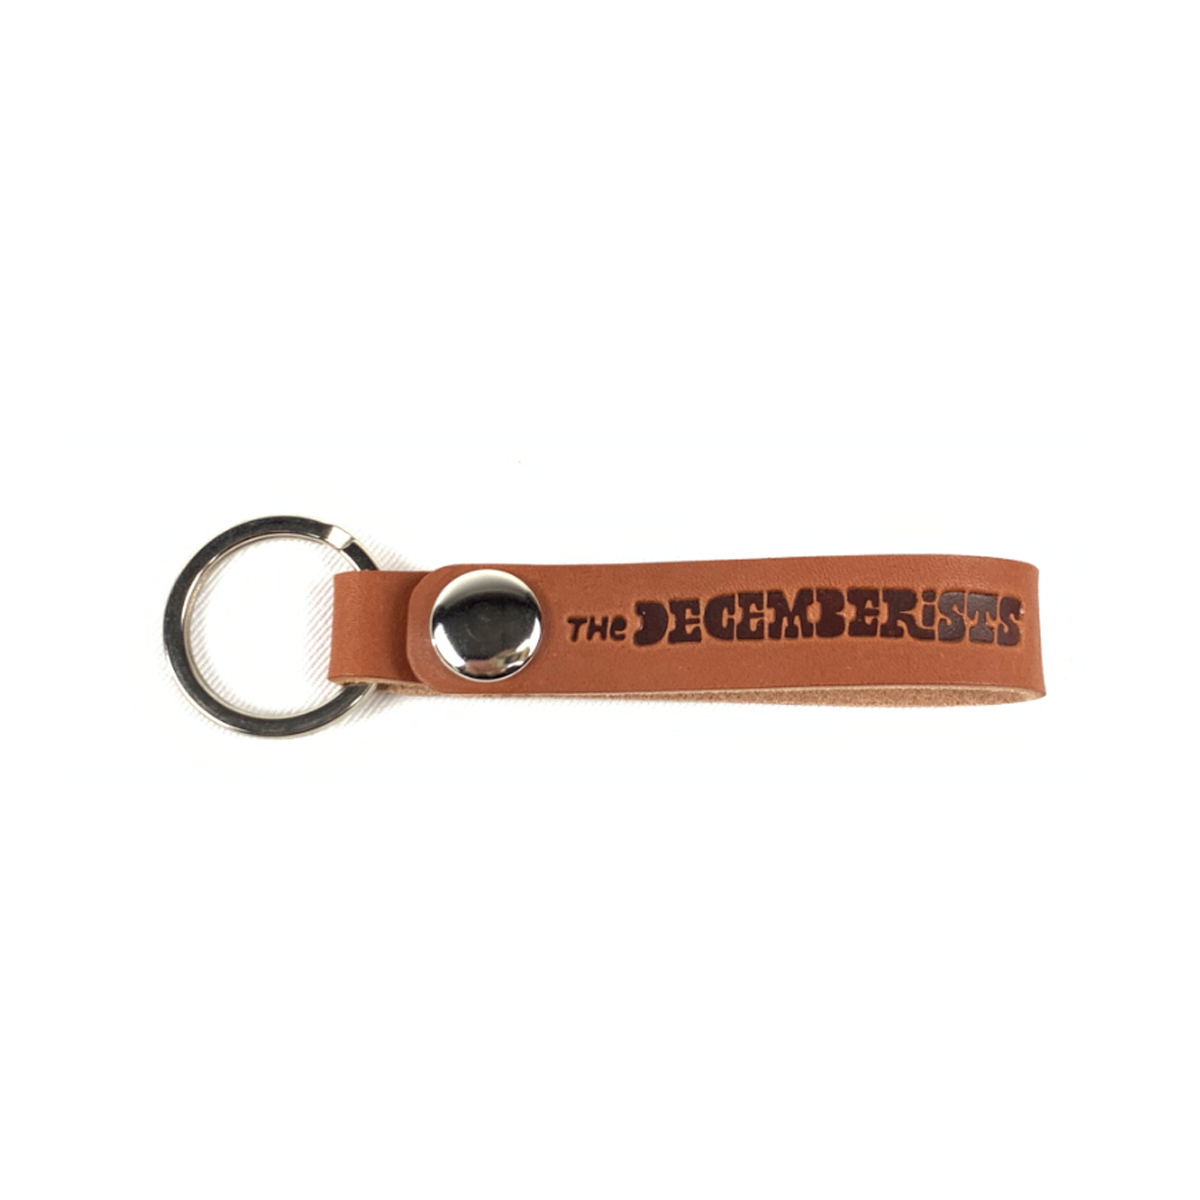 The Decemberists Leather Keychain